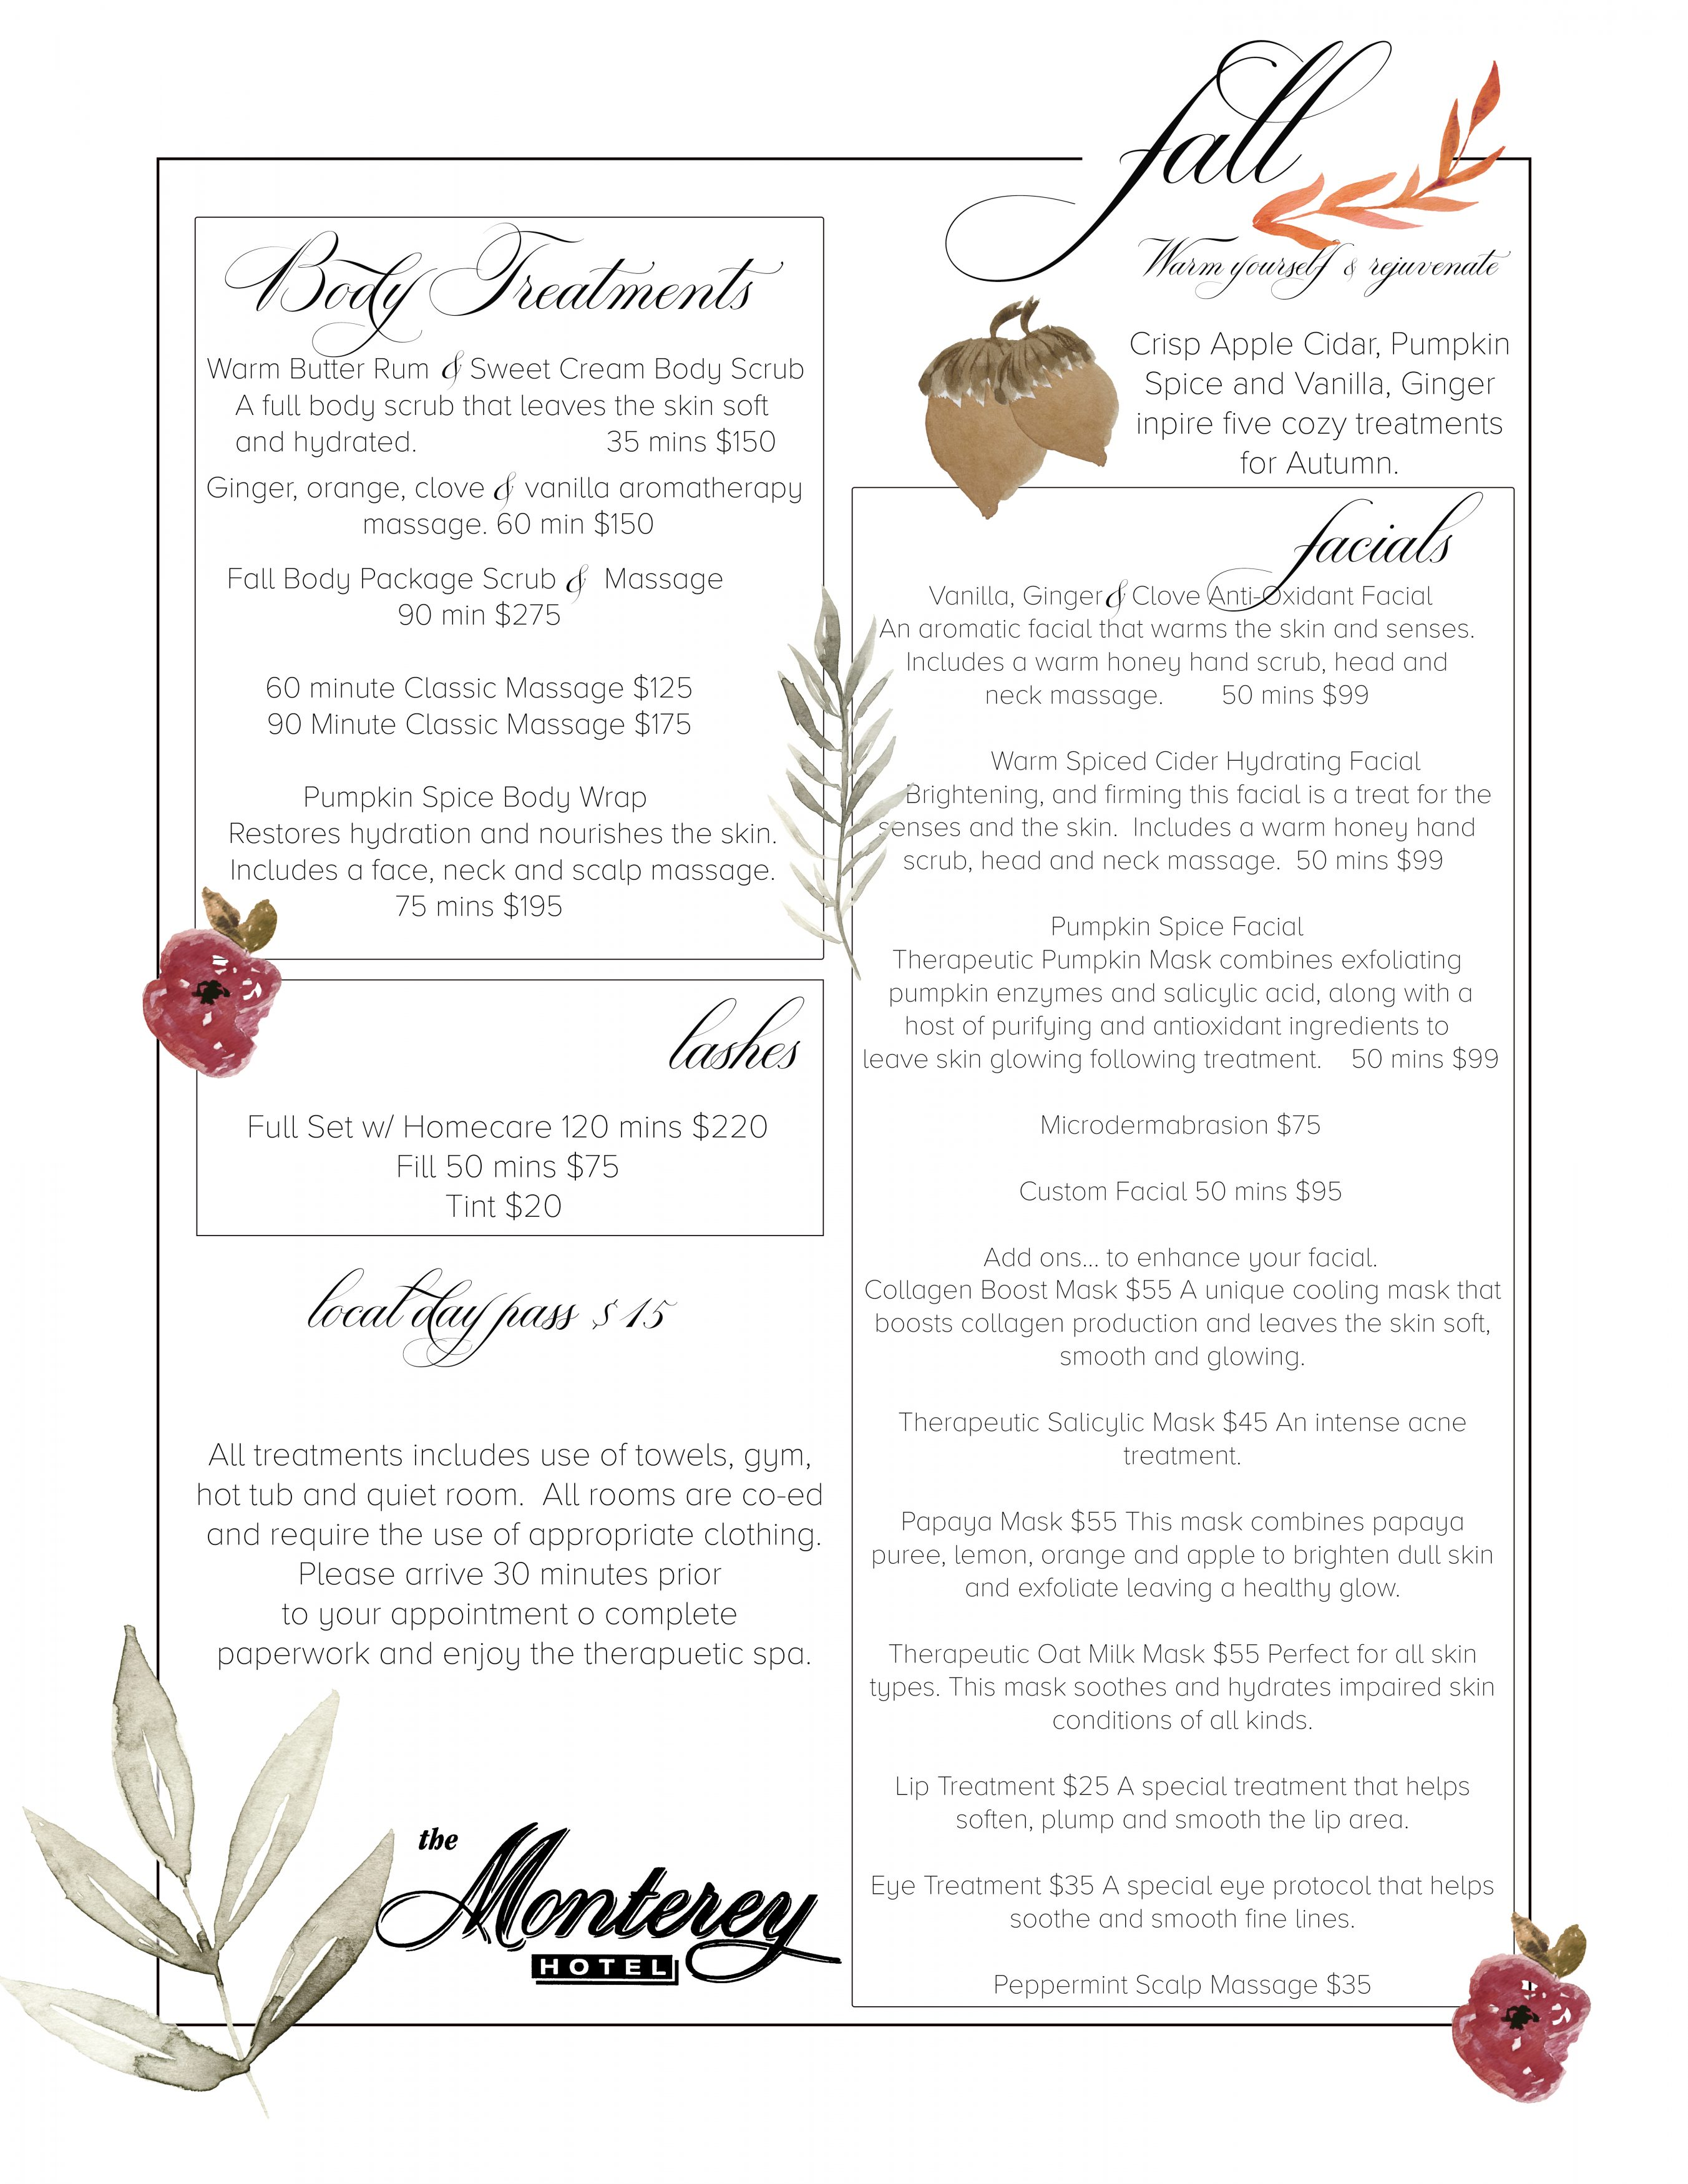 View the full service menu and book appointments for Doran Poma Skincare and the Monterey Hotel & Spa. Massage and Facials in Monterey, CA.